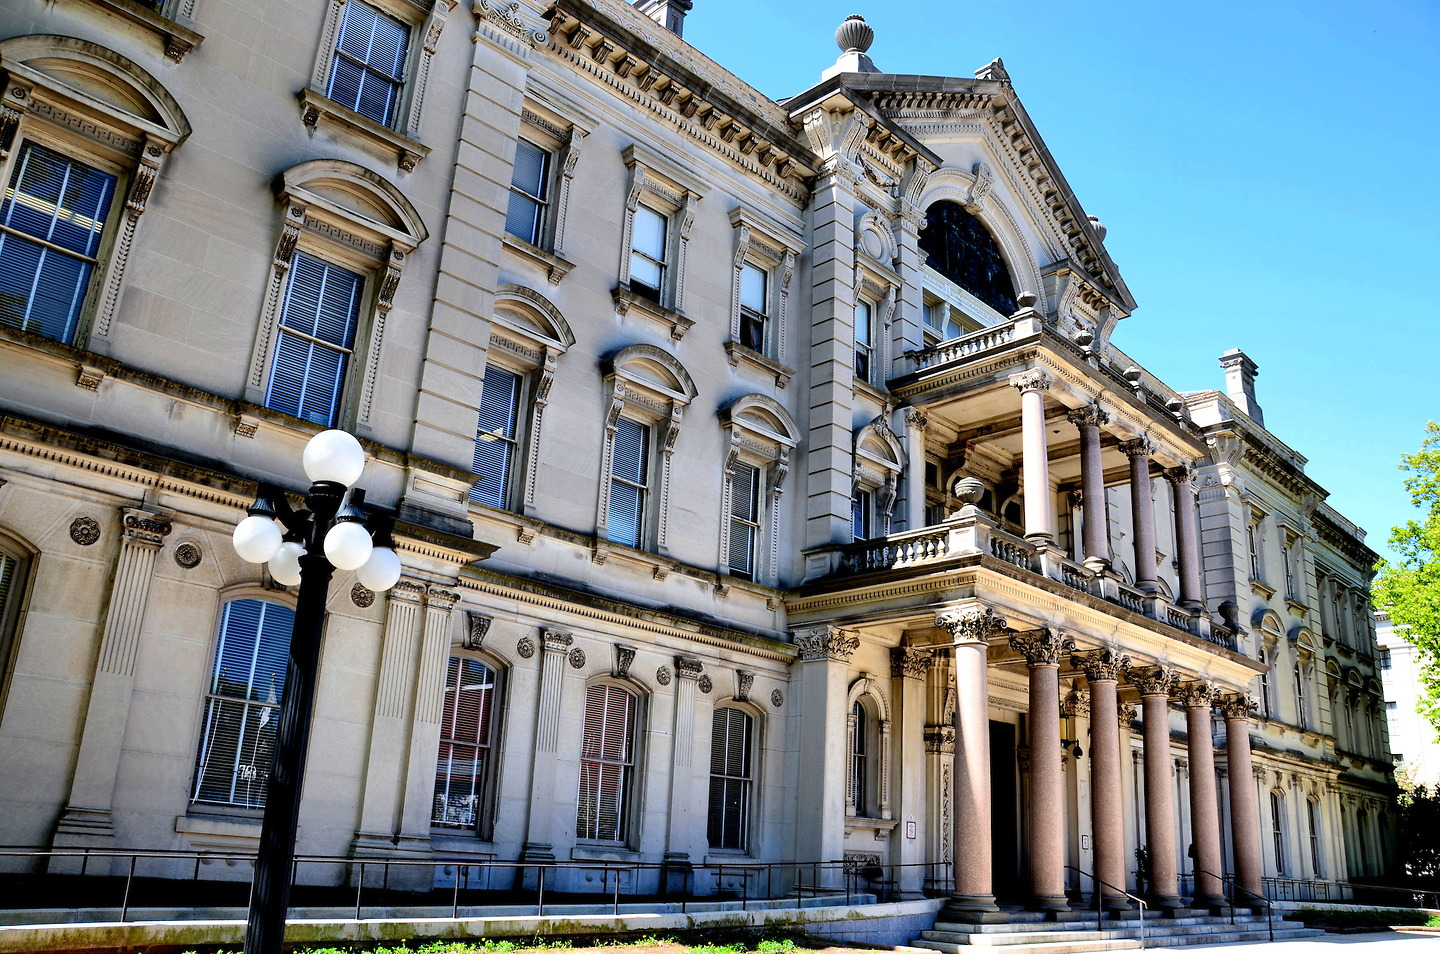 New jersey state house capitol building in trenton new for Building a house in nj